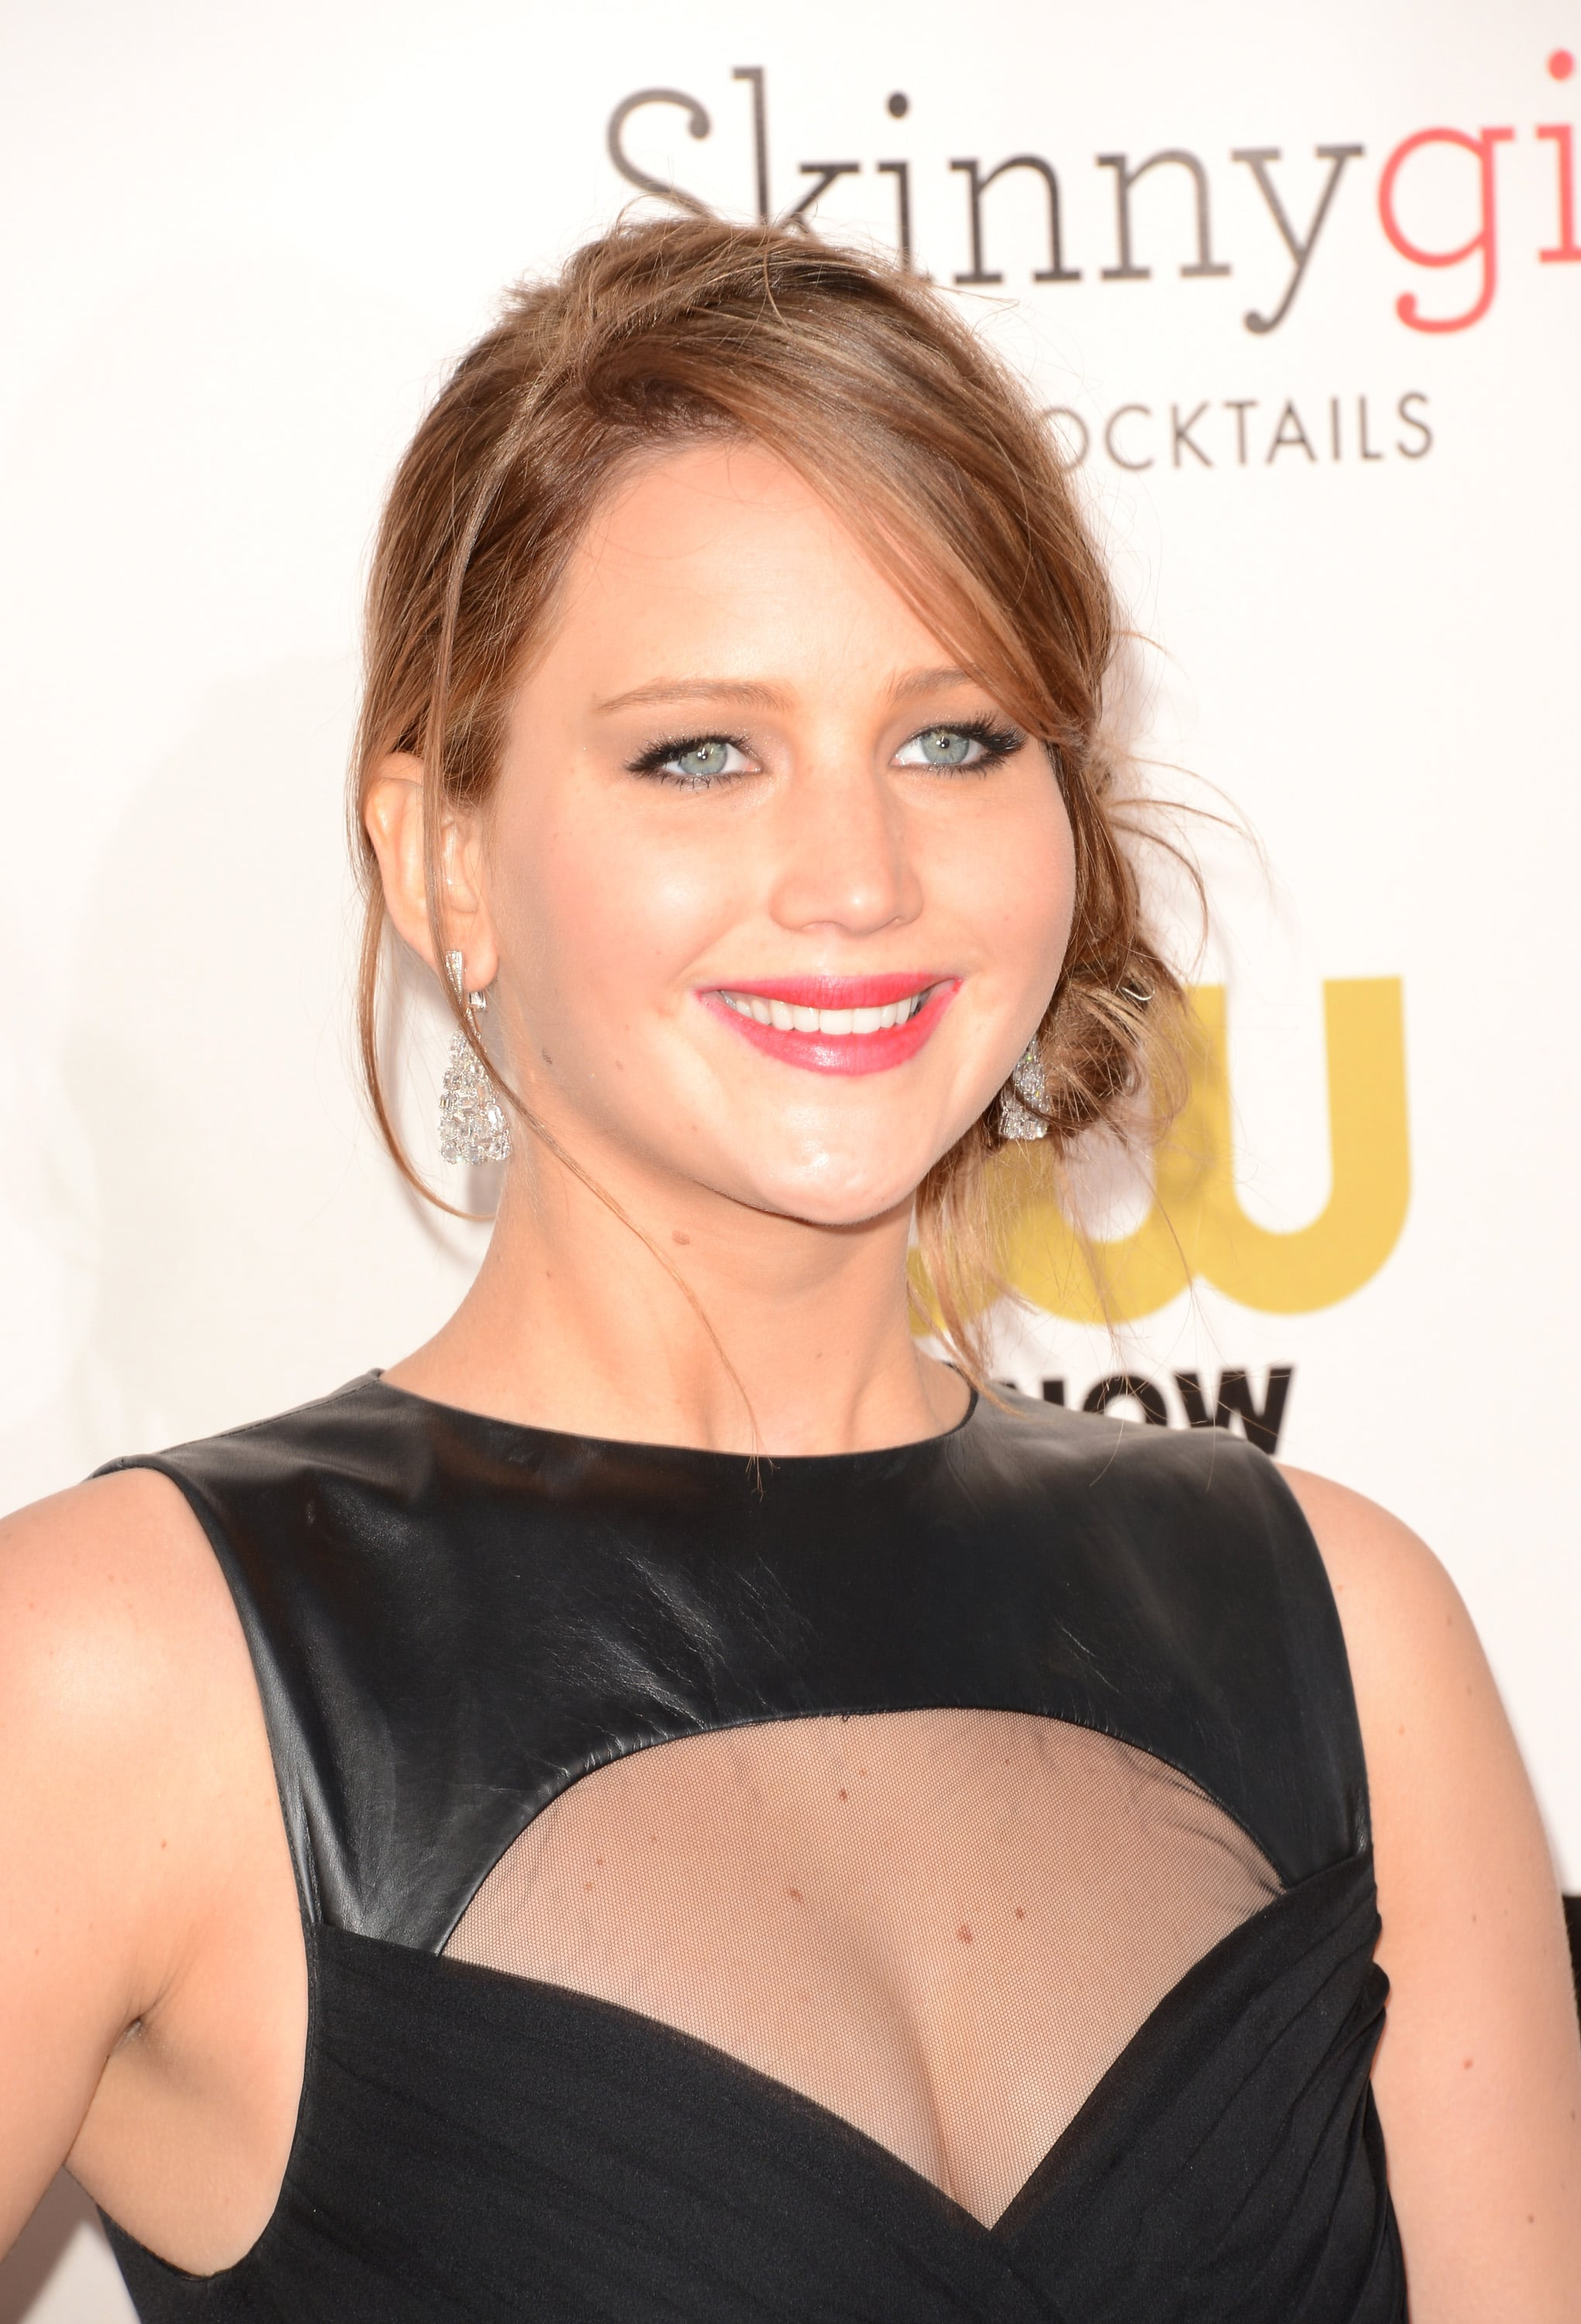 Jennifer Lawrence arrived at the 2013 Critics' Choice Awards.